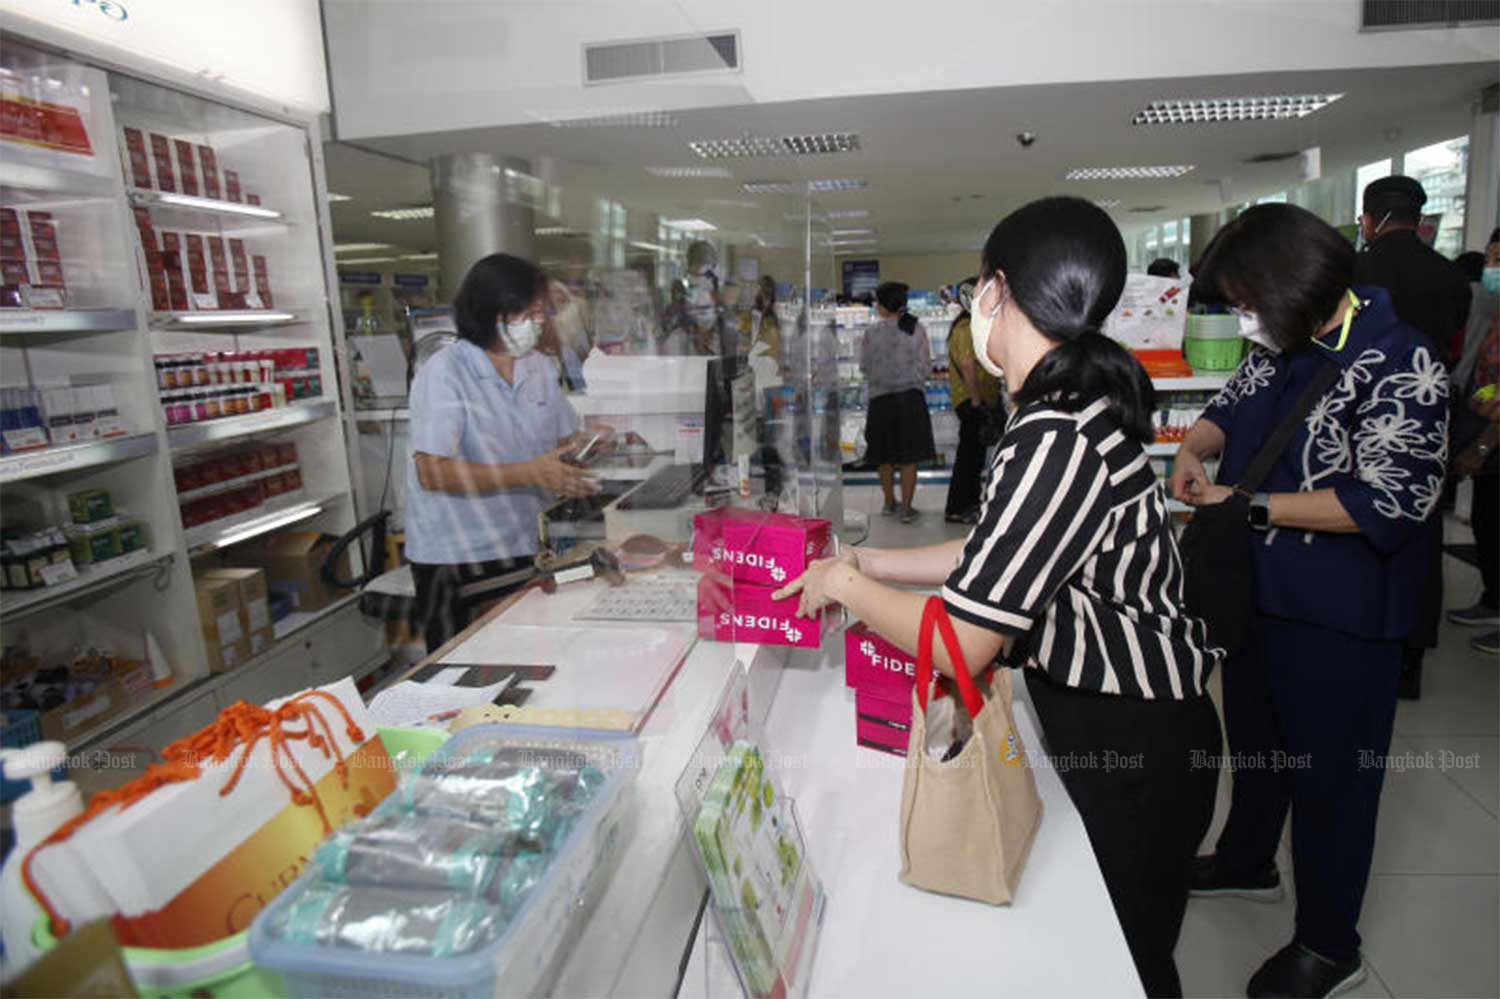 People queue to buy surgical masks at the Government Pharmaceutical Organisation's Ratchathewi branch in Bangkok on Thursday. Each box, containing 50 masks, costs 125 baht with no purchase limits. (Photo by Nutthawat Wicheanbut)